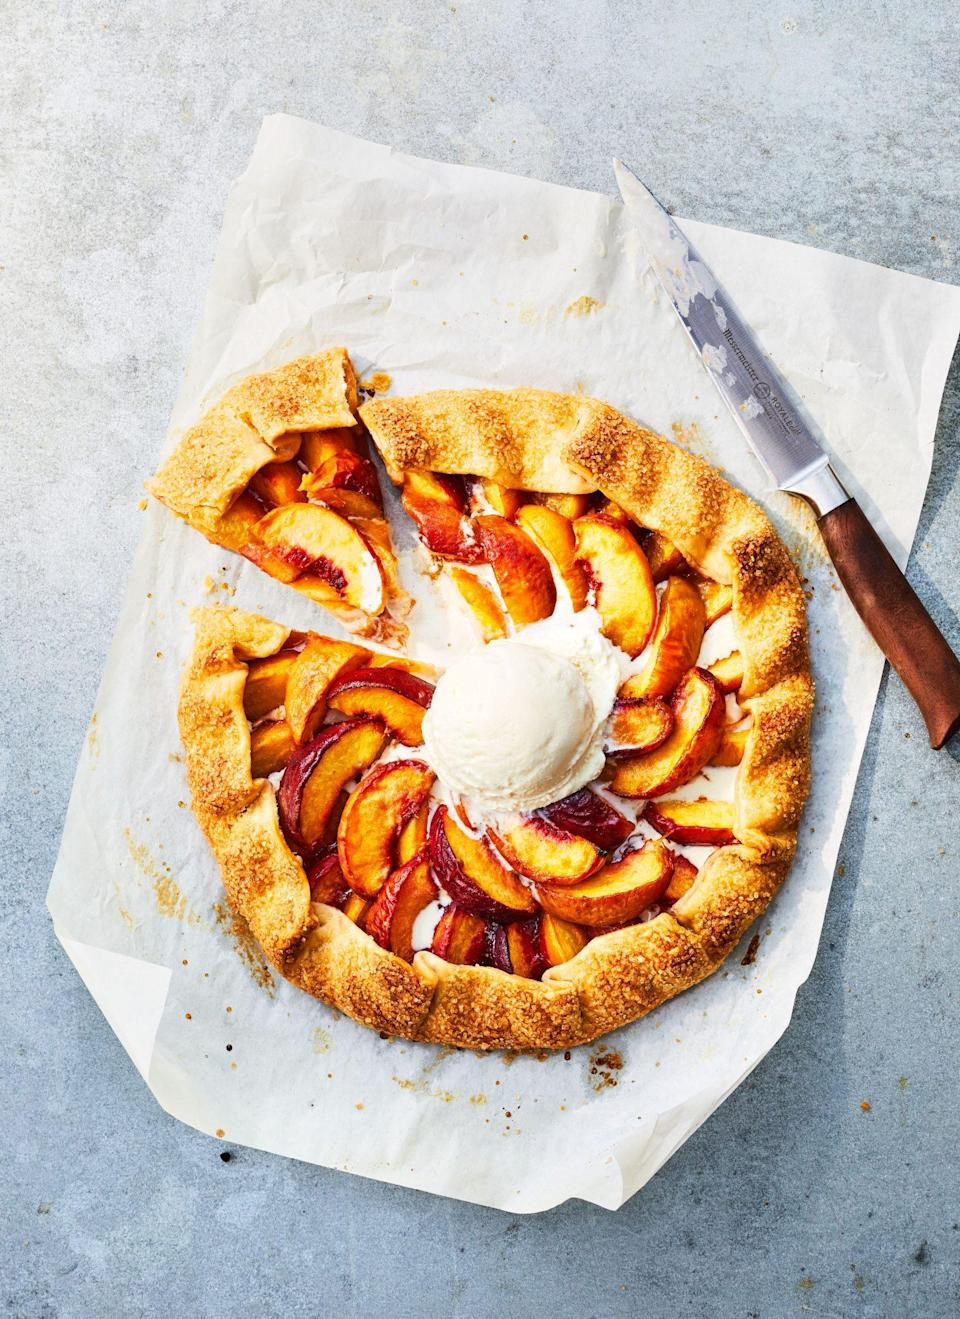 """<p><strong>Recipe: </strong><a href=""""https://www.southernliving.com/recipes/gingered-peach-galette"""" rel=""""nofollow noopener"""" target=""""_blank"""" data-ylk=""""slk:Gingered Peach Galette"""" class=""""link rapid-noclick-resp""""><strong>Gingered Peach Galette</strong></a></p> <p>""""My grandmother's favorite way to use up peaches, tomatoes, or pretty much anything she'd found at the summer farmers' market is by slapping it on some pastry and baking it into a galette. It's quick, easy, and doesn't have to be perfectly pretty. It really lets in-season product shine. She's been known to throw ginger into her peach galette, so this recipe feels just like her."""" Kaitlyn Yarborough, Assistant Editor</p>"""